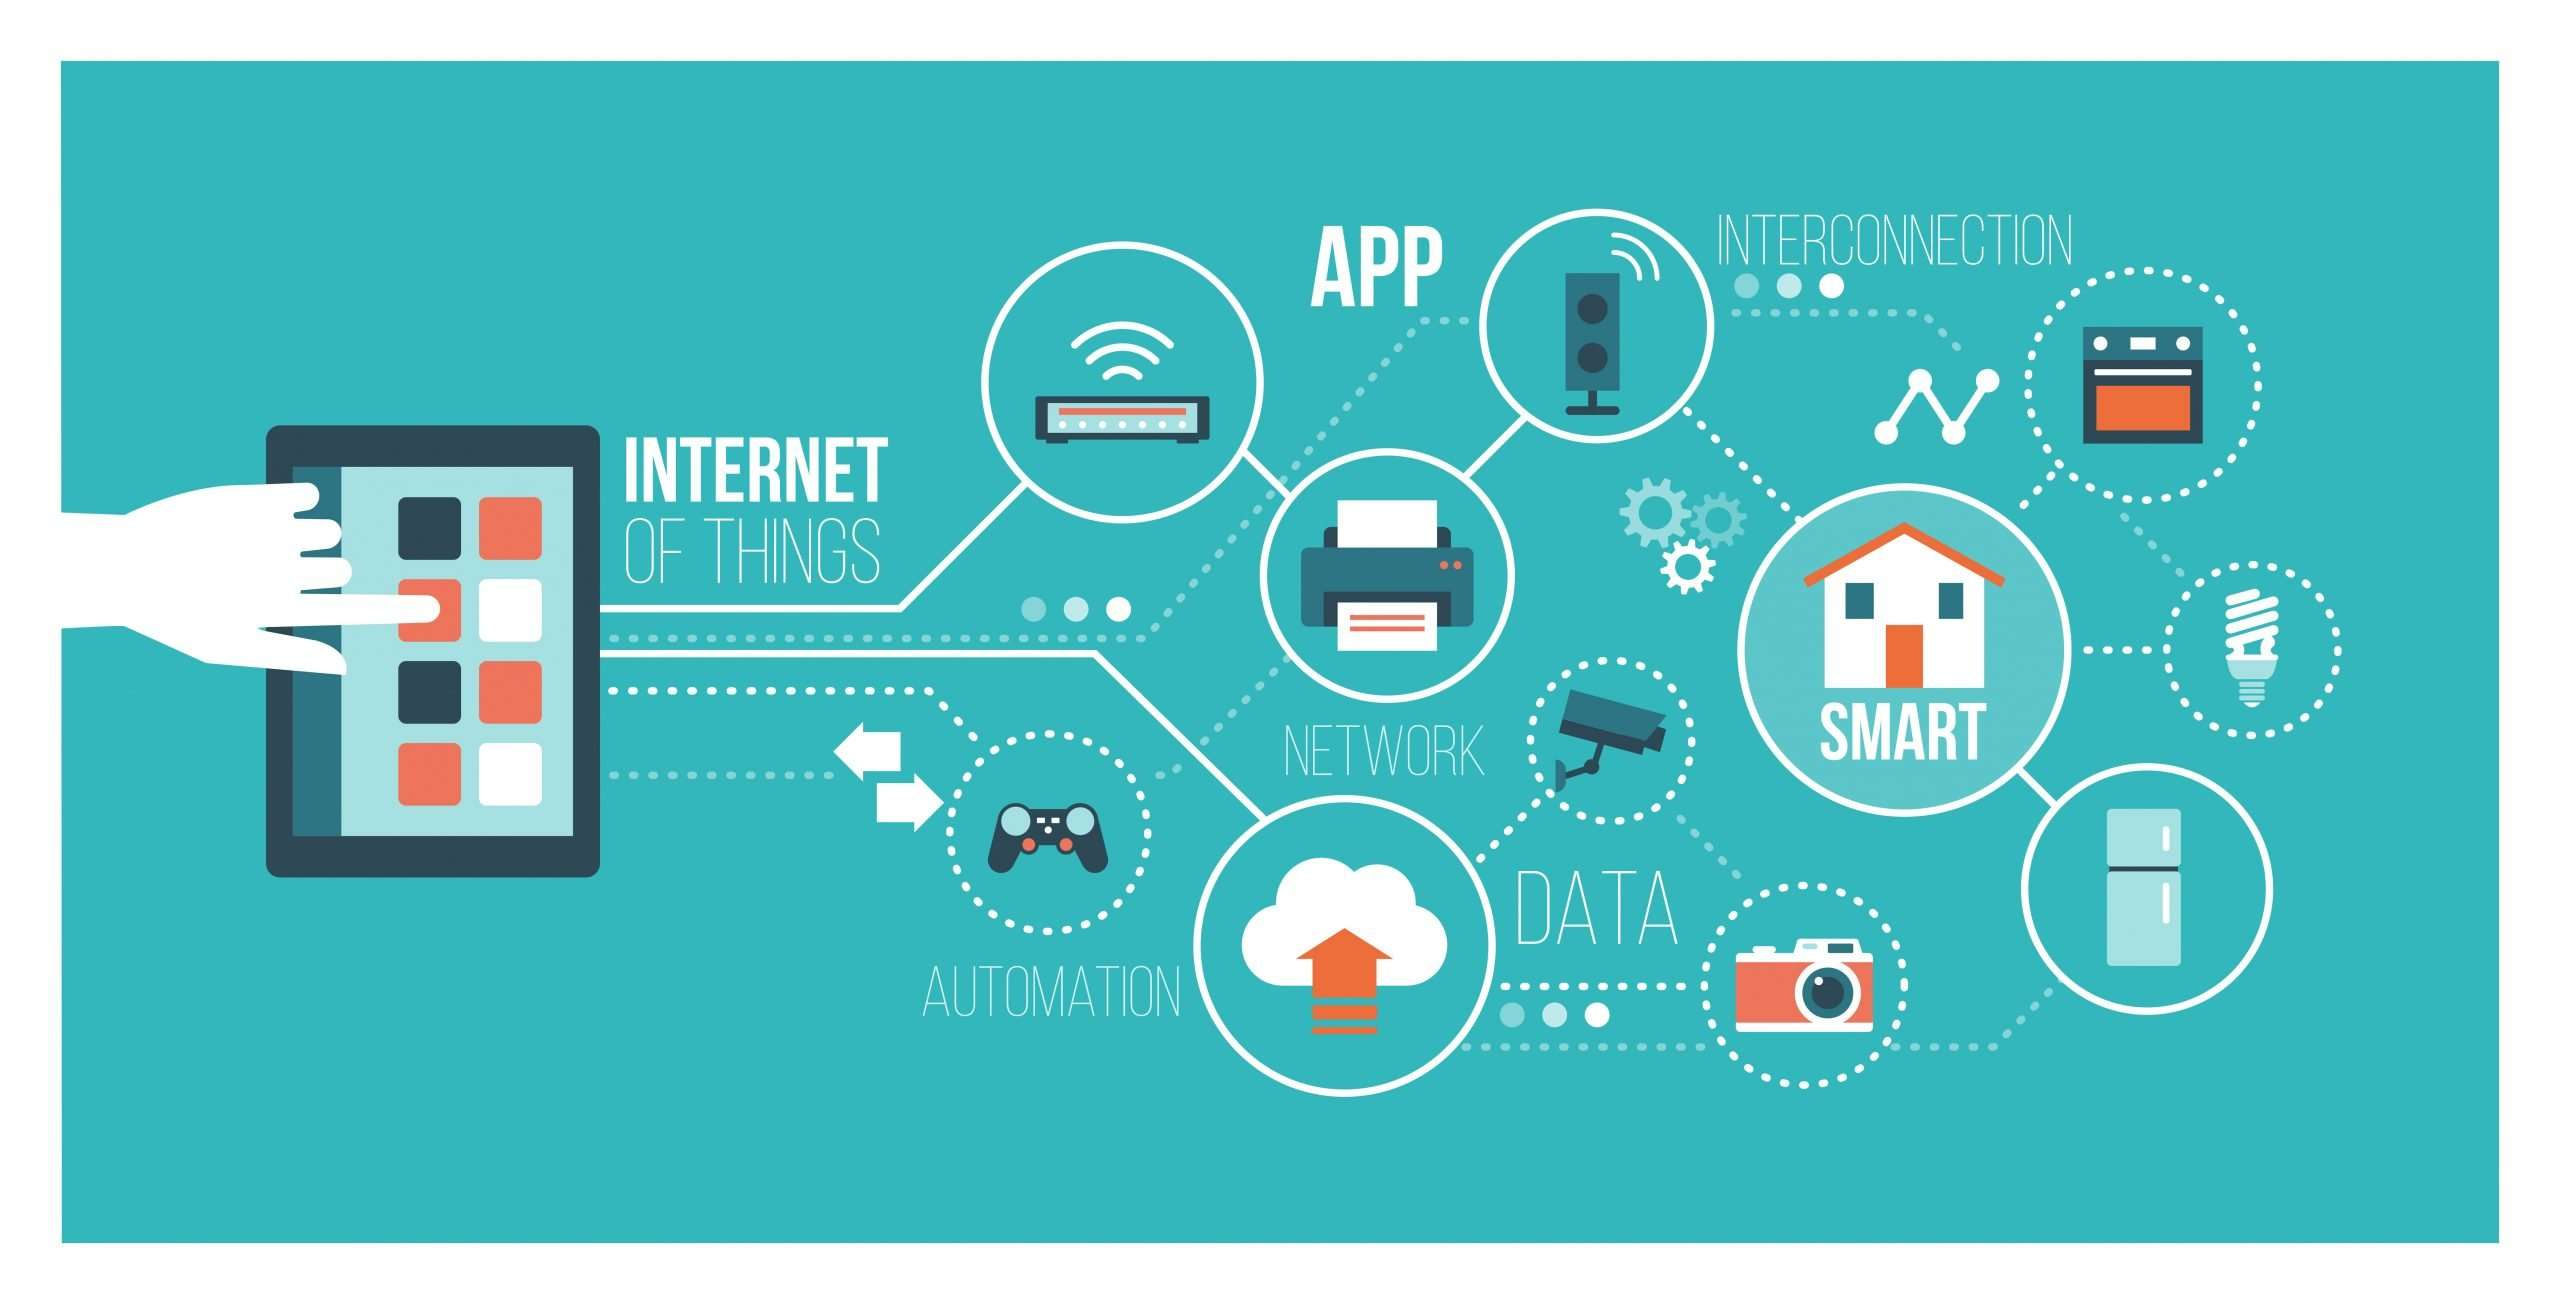 How can internet technology improve business processes?